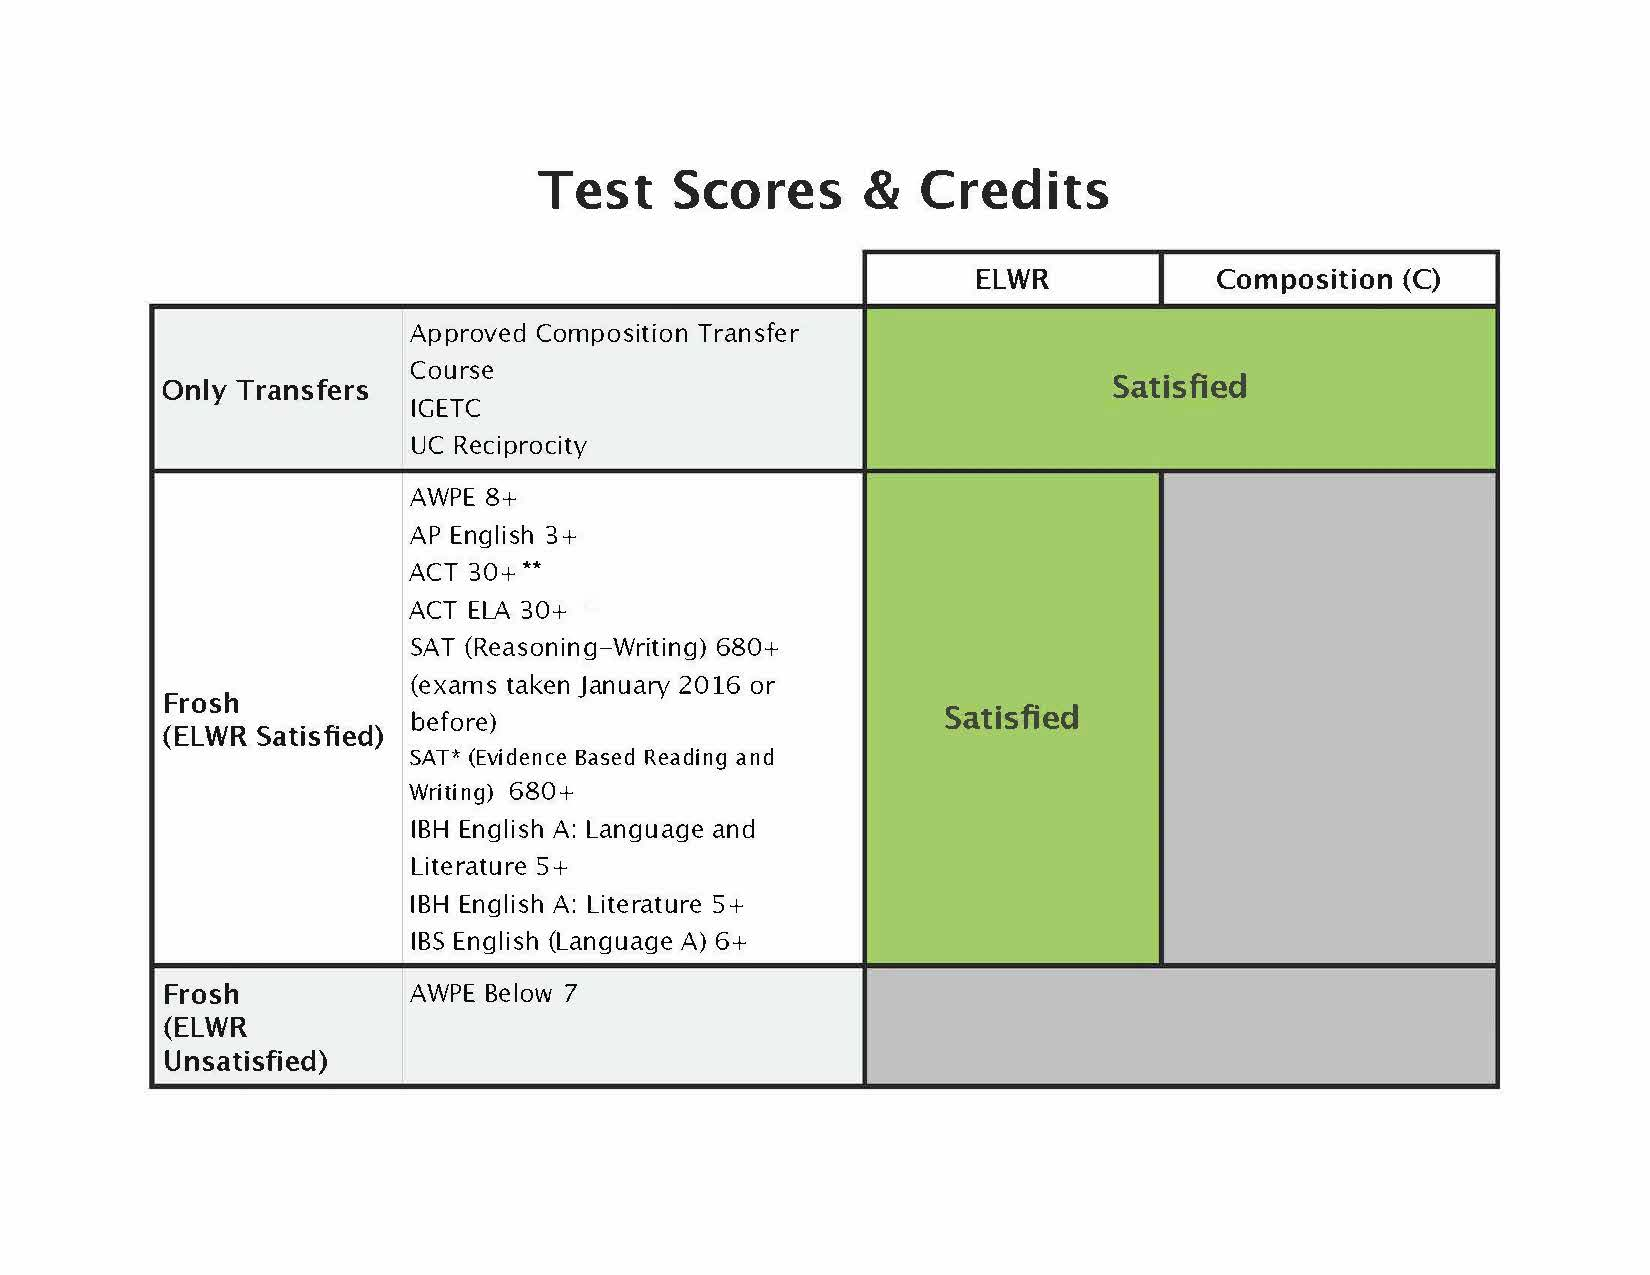 Test Scores & Credits, Students Entering Fall 2018 and After